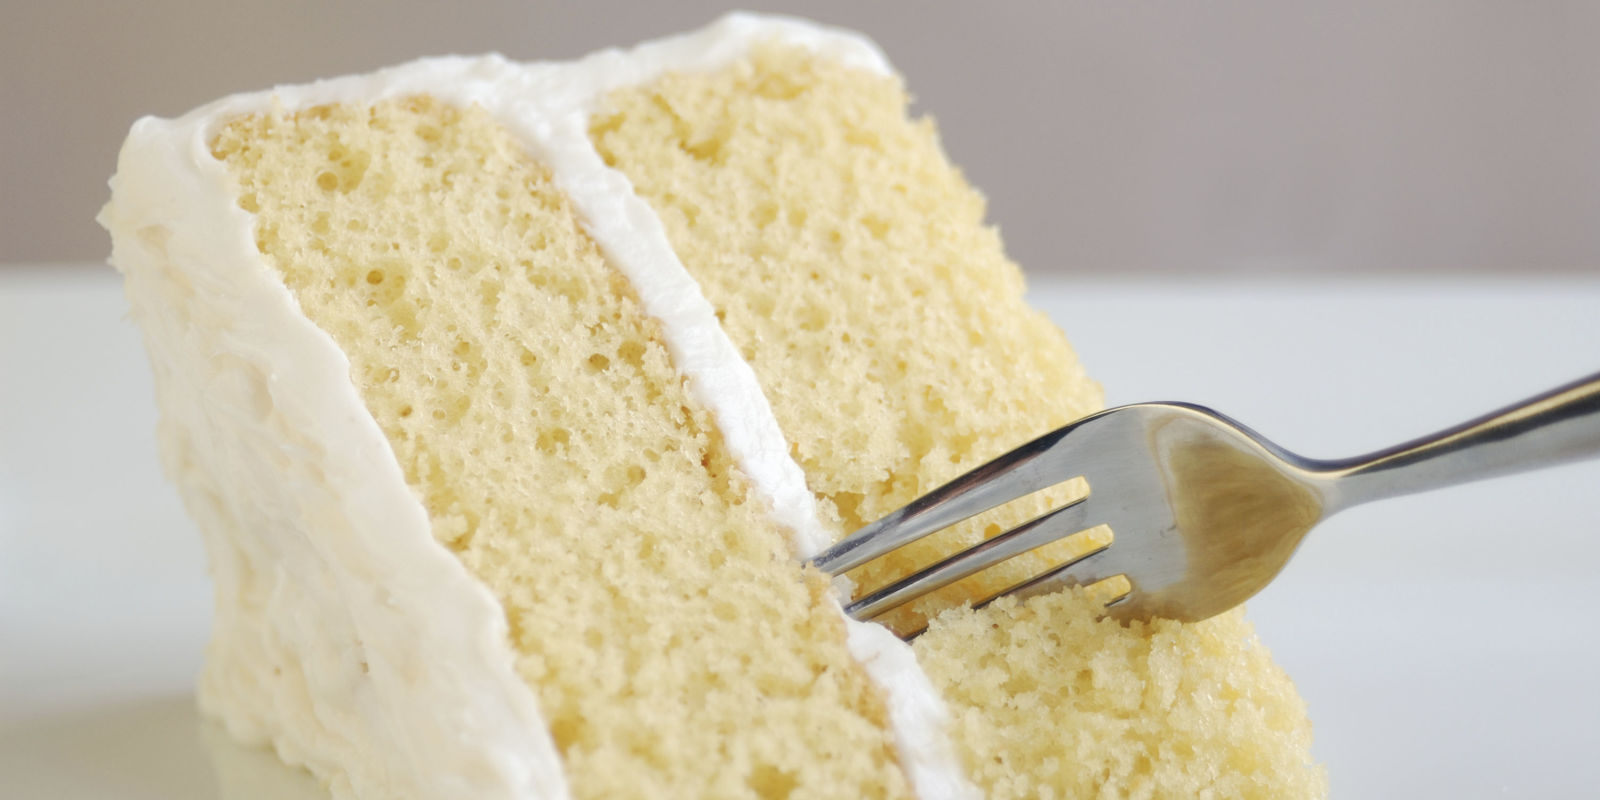 Best vanilla cake recipe how to make easy vanilla cake for Easy basic cake recipes from scratch